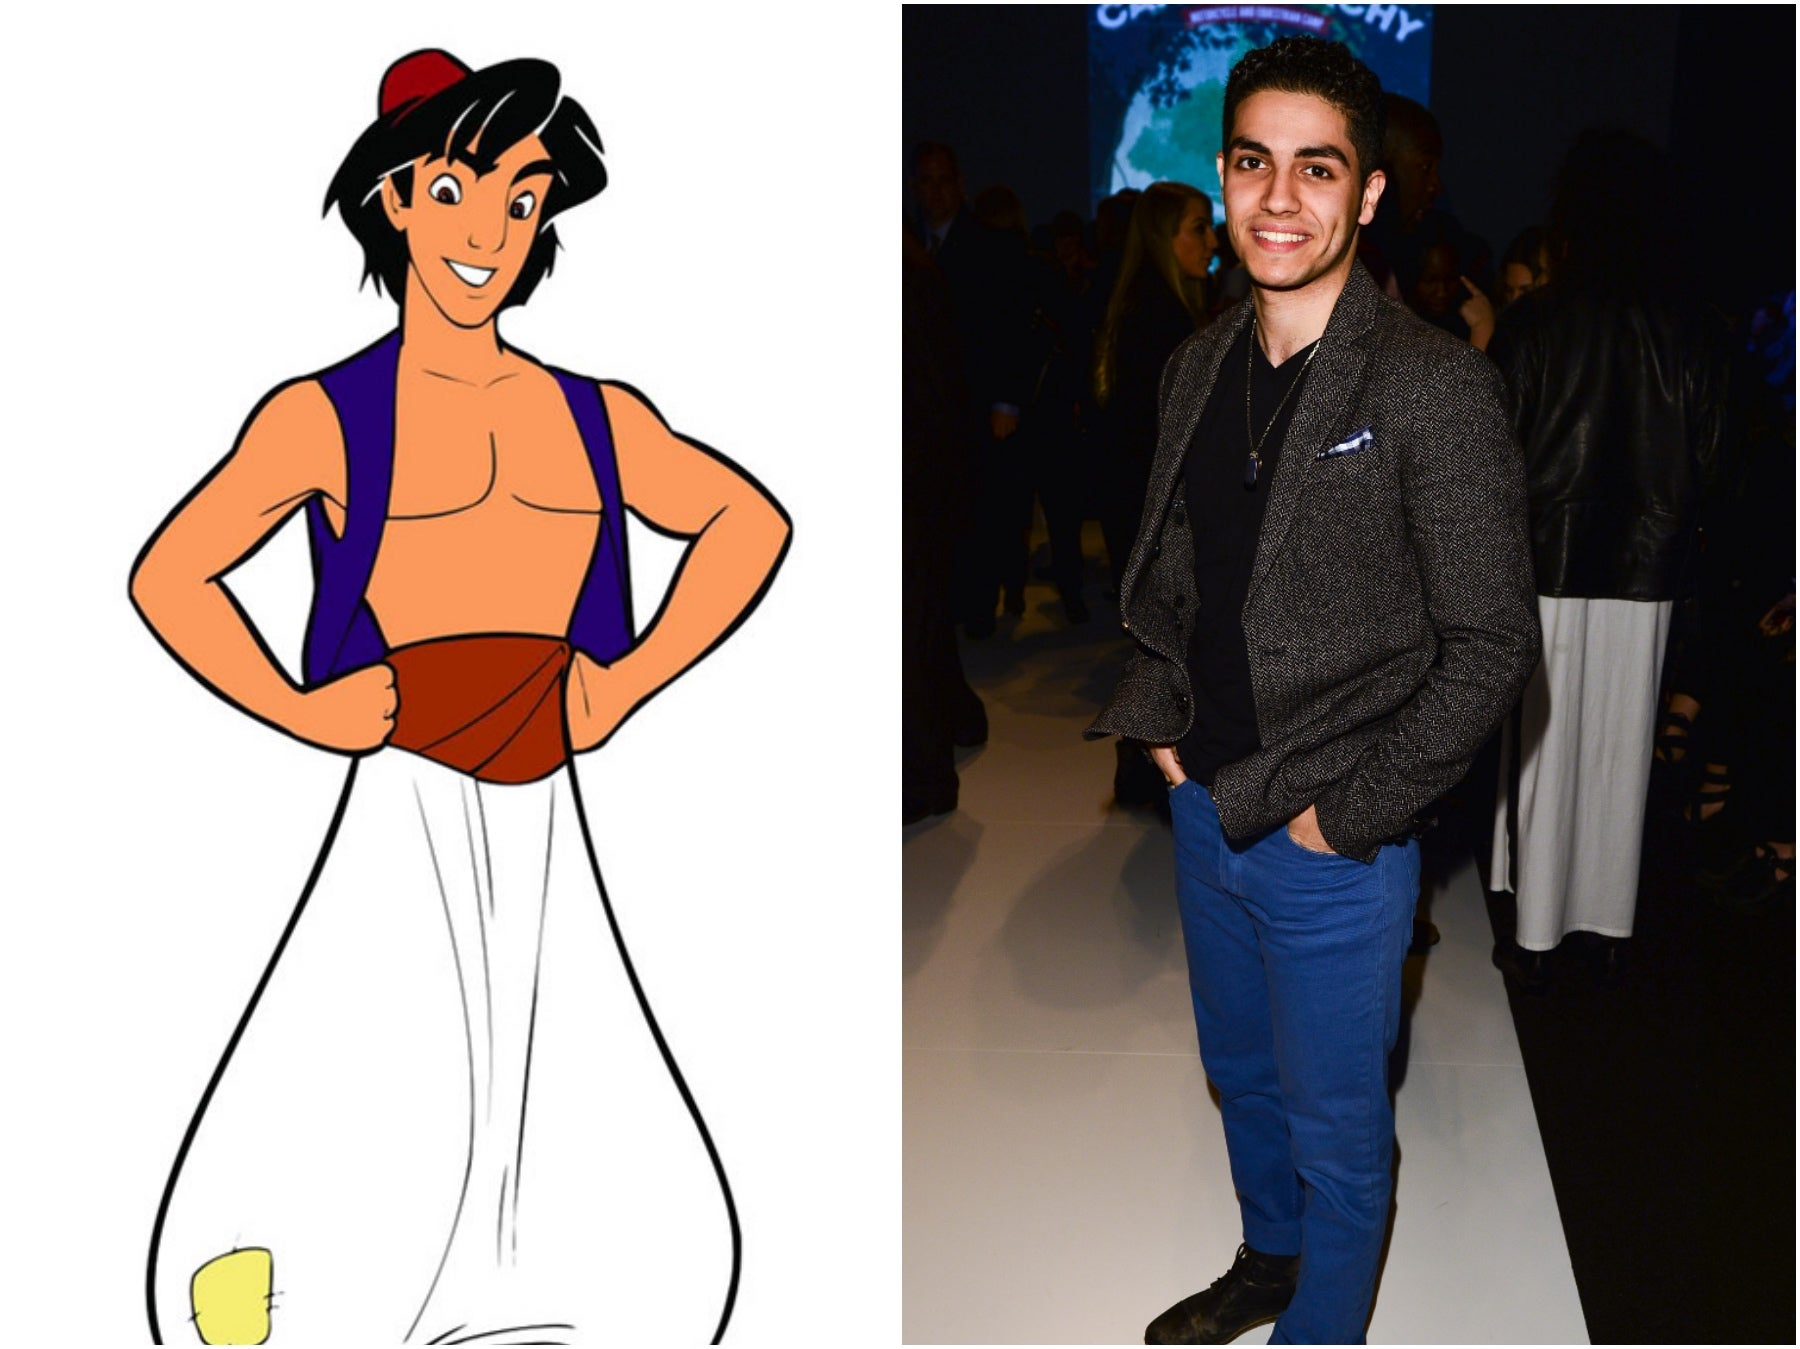 The Aladdin character by Disney and actor Mena Massoud